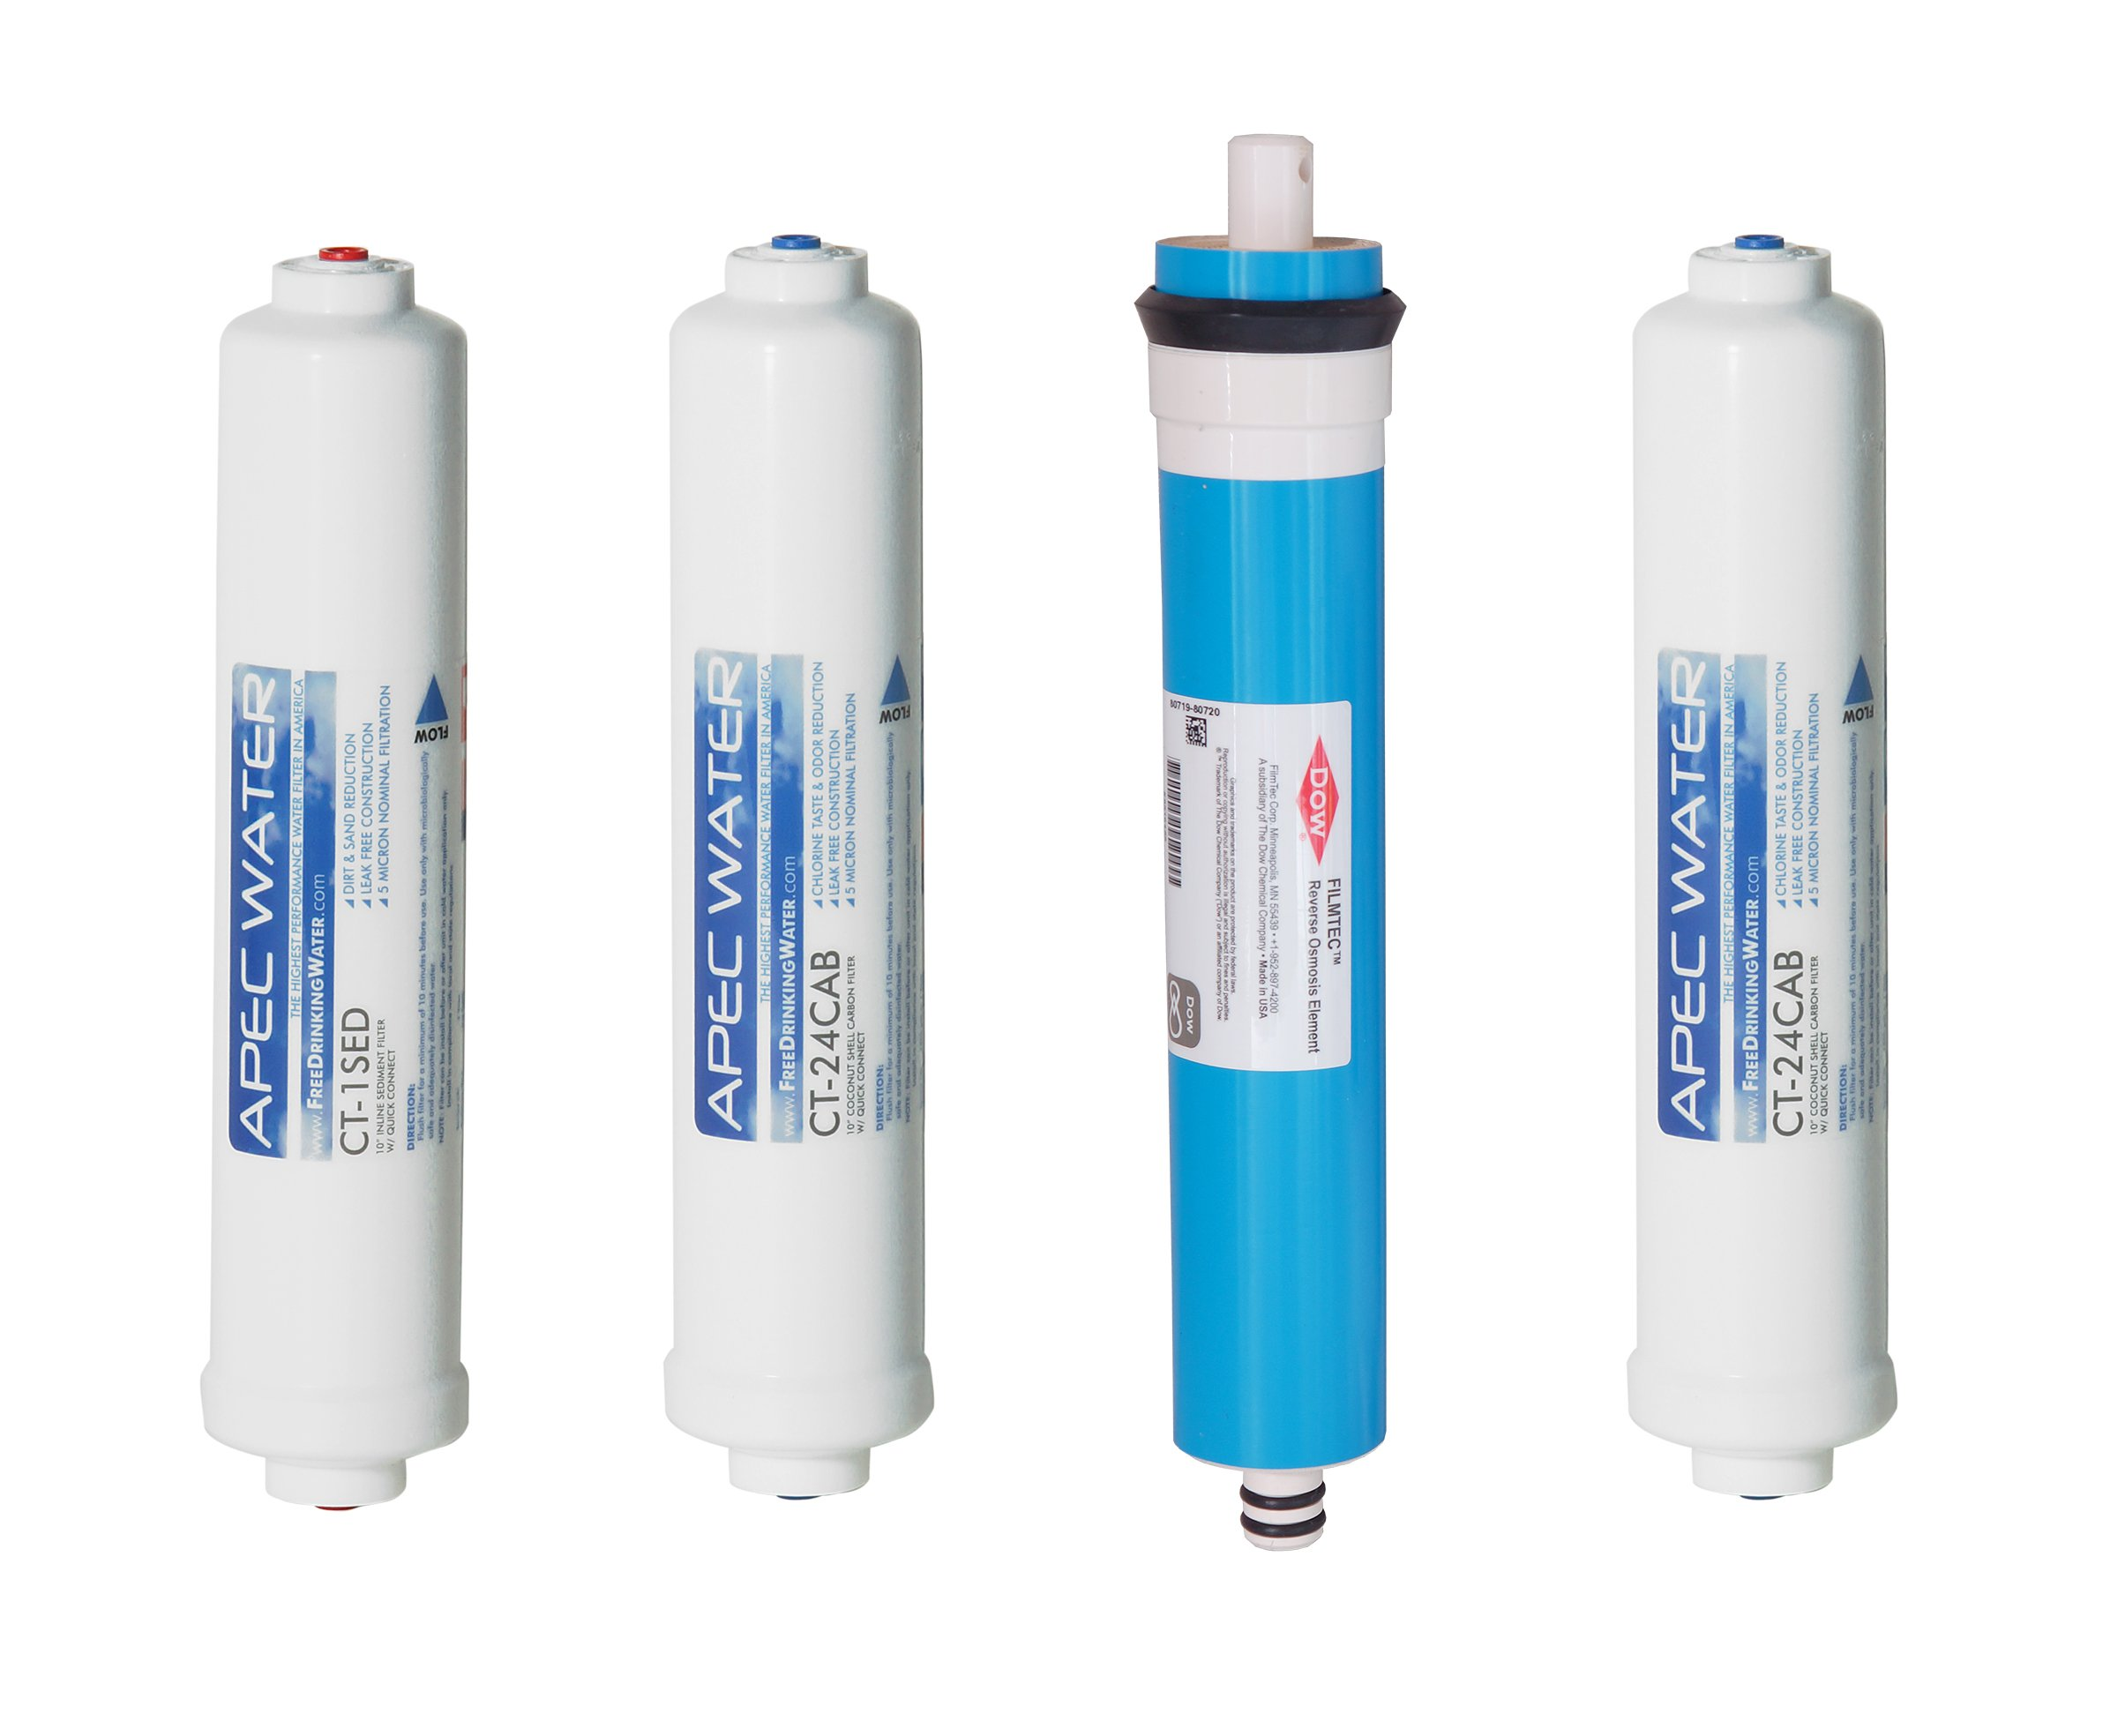 APEC FILTER-MAXCTOP US MADE 90 GPD Complete Replacement Filter Set for ULTIMATE Series Countertop Reverse Osmosis Water Filter System